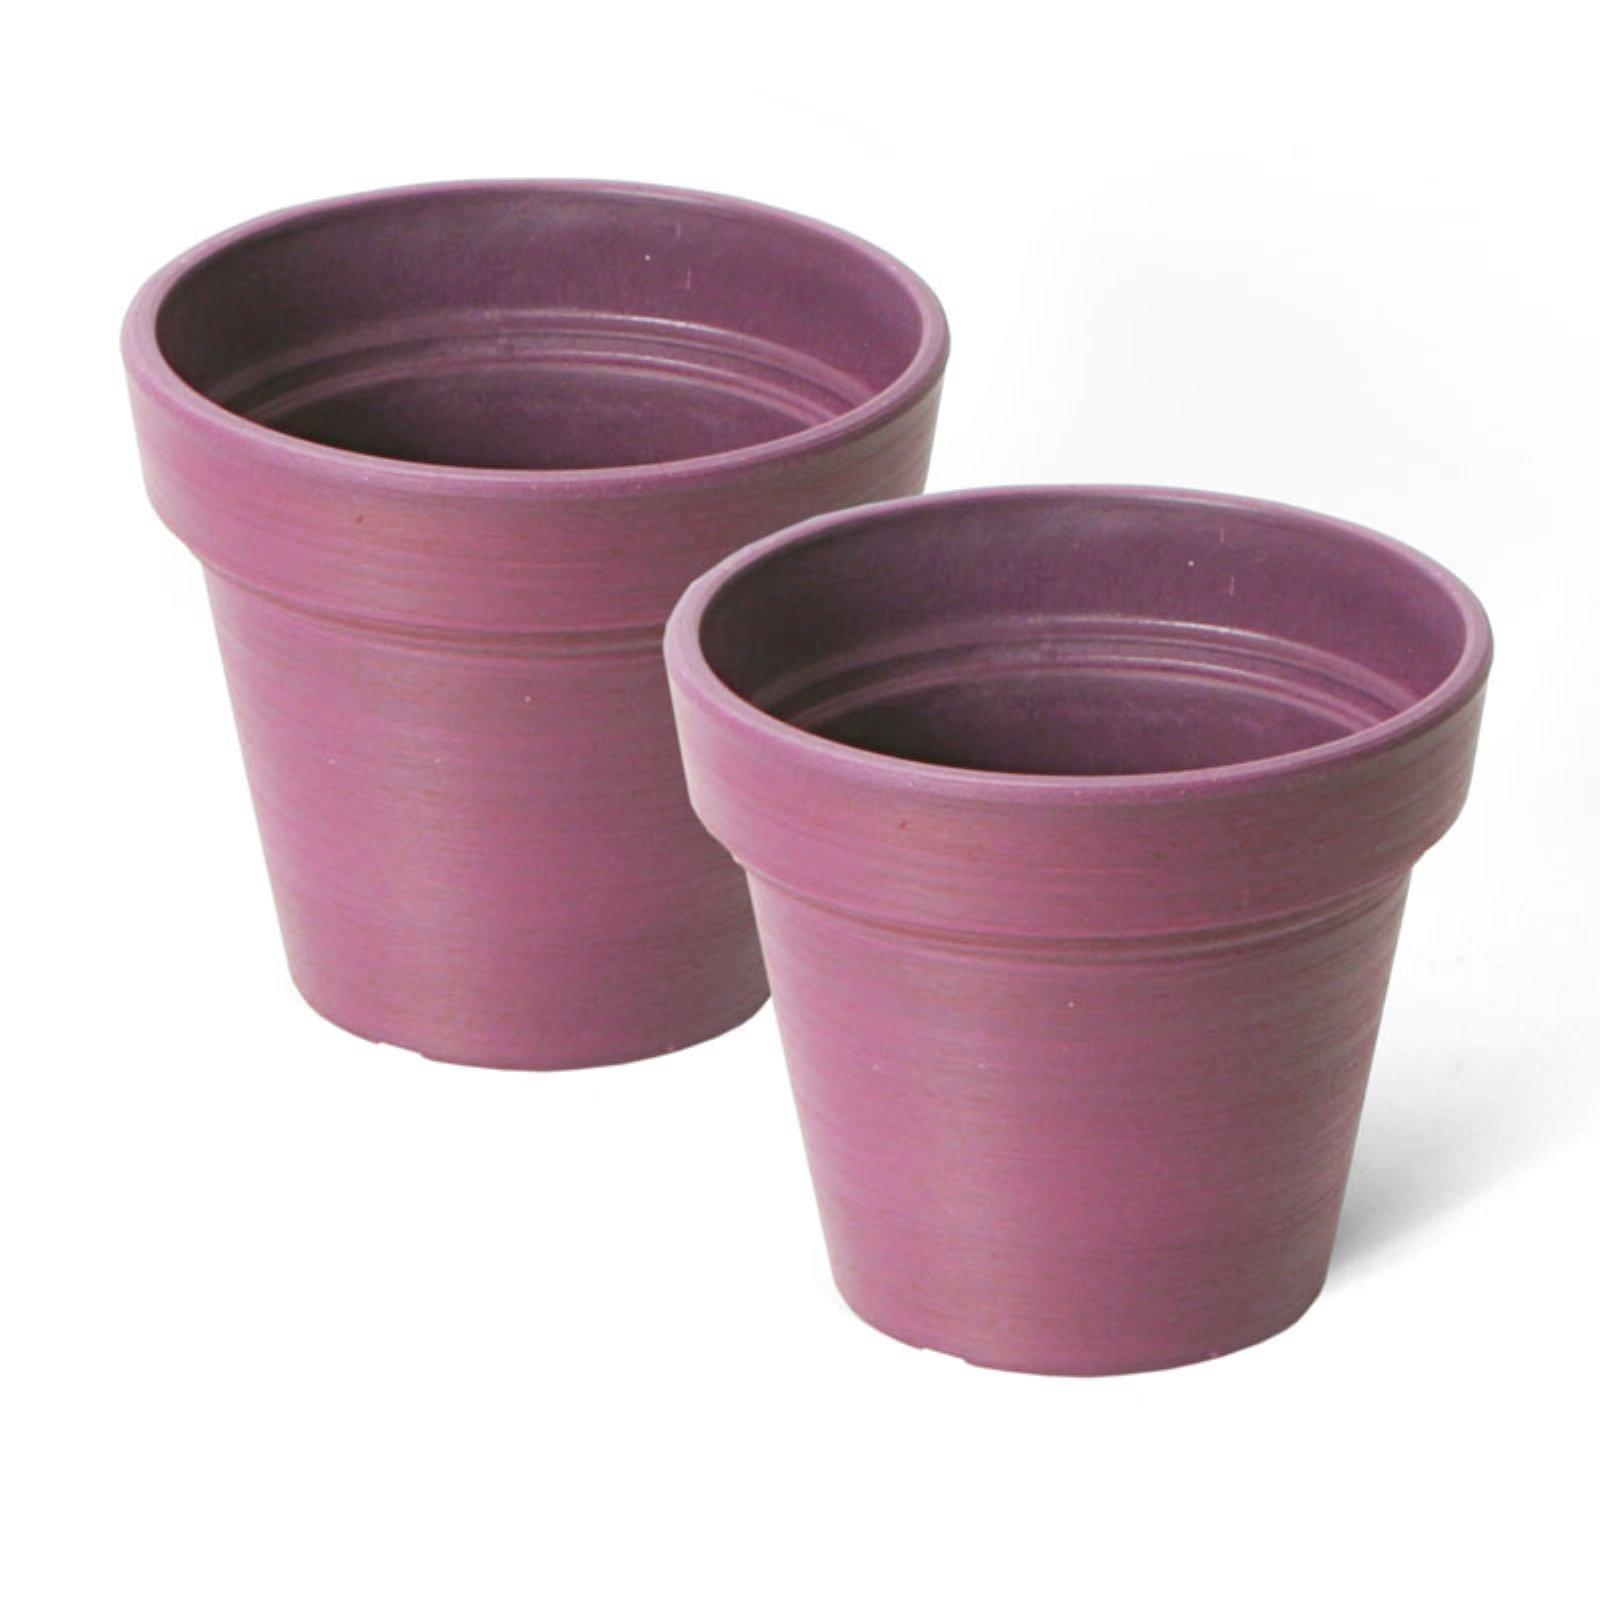 Algreen Round 6 in. Banded Planter - Set of 2